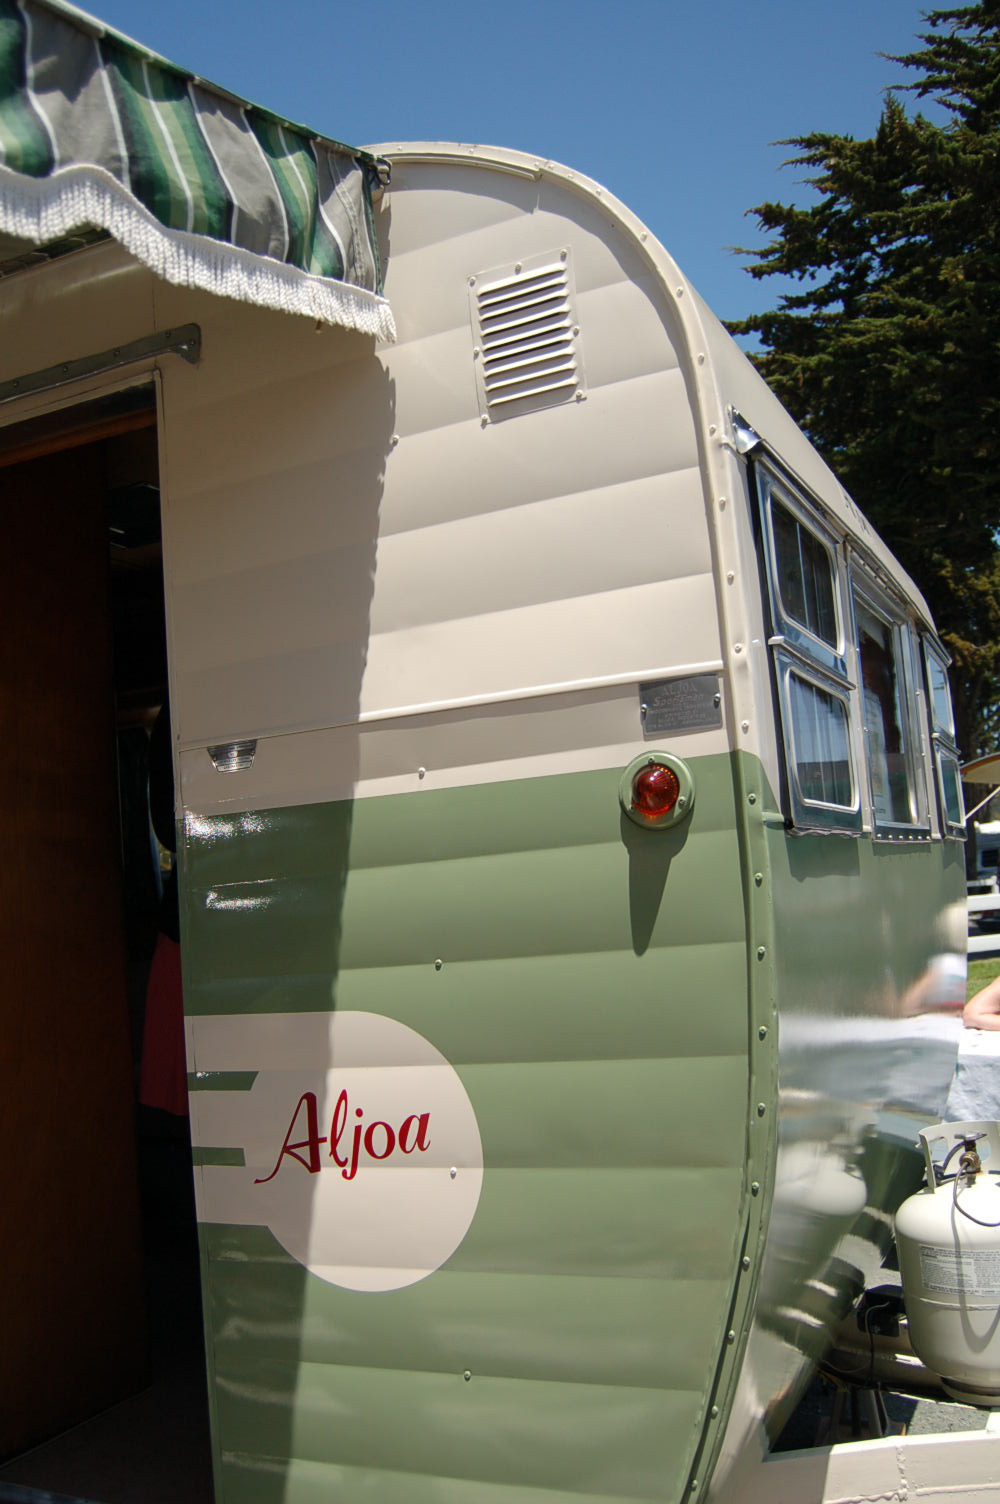 Restored Vintage 1955 Aljoa Sportsman Trailer With New Avocado Green And Cream Exterior Paint Scheme